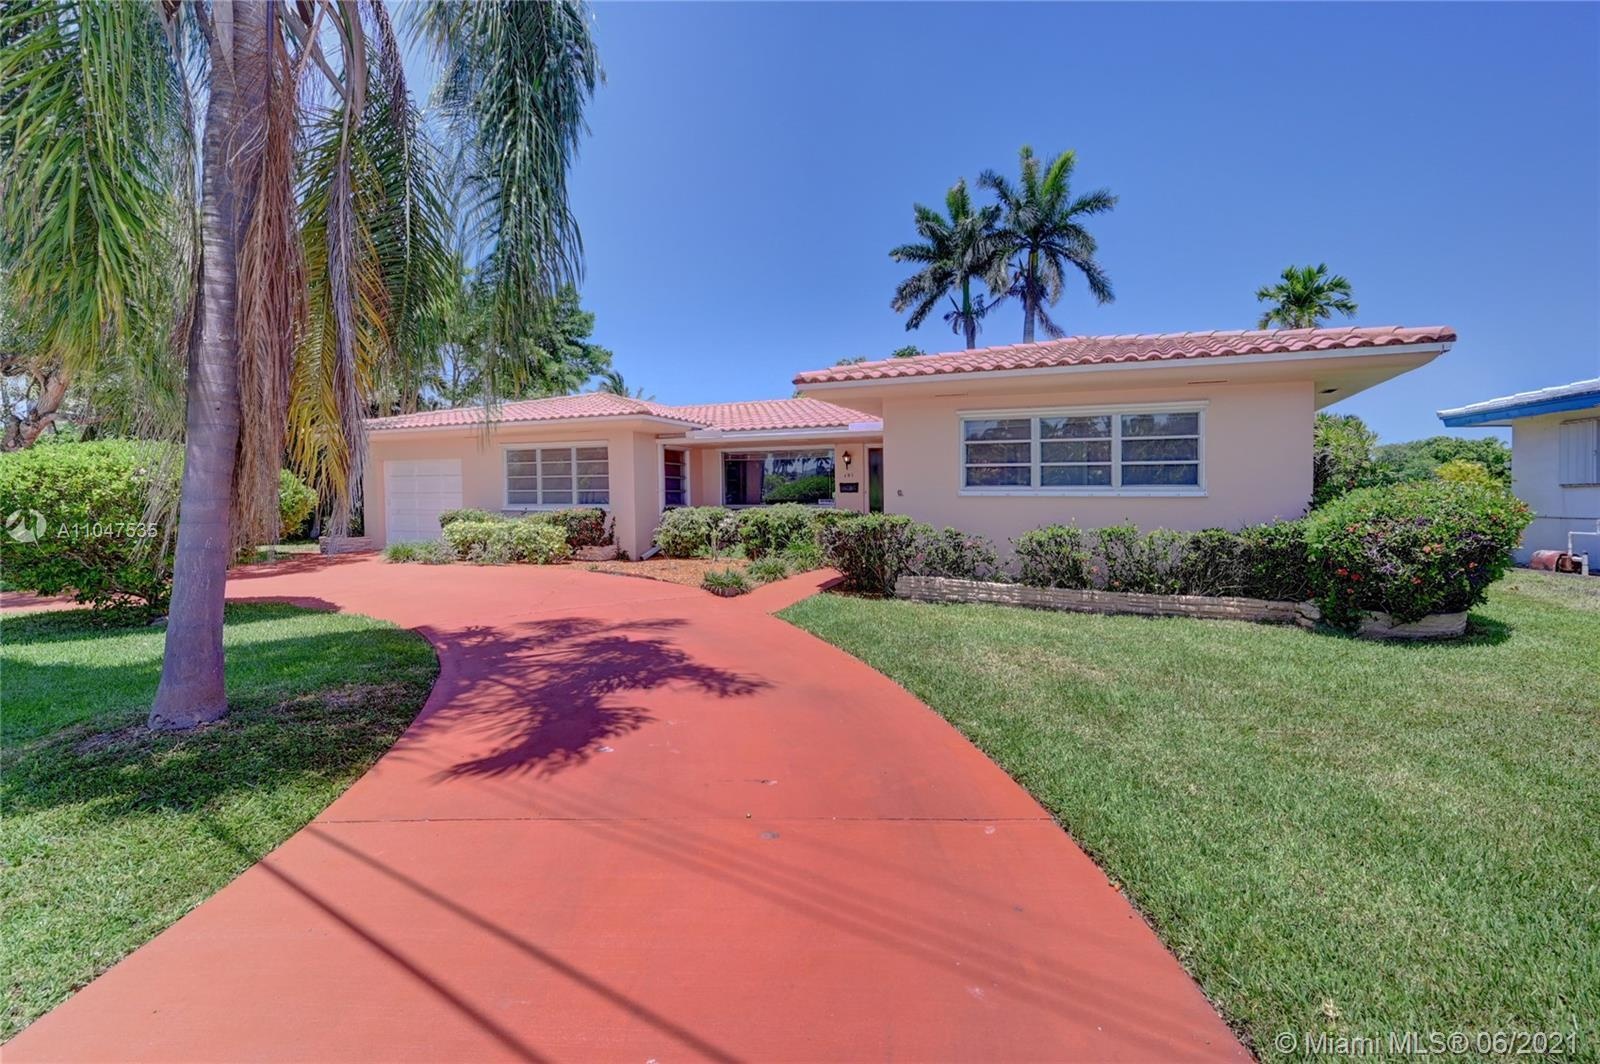 FOR SALE As Is. Close to Downtown Hollywood, Great Neighborhood! No HOA. 4 Bed/3 Bath,1 Car Garage,